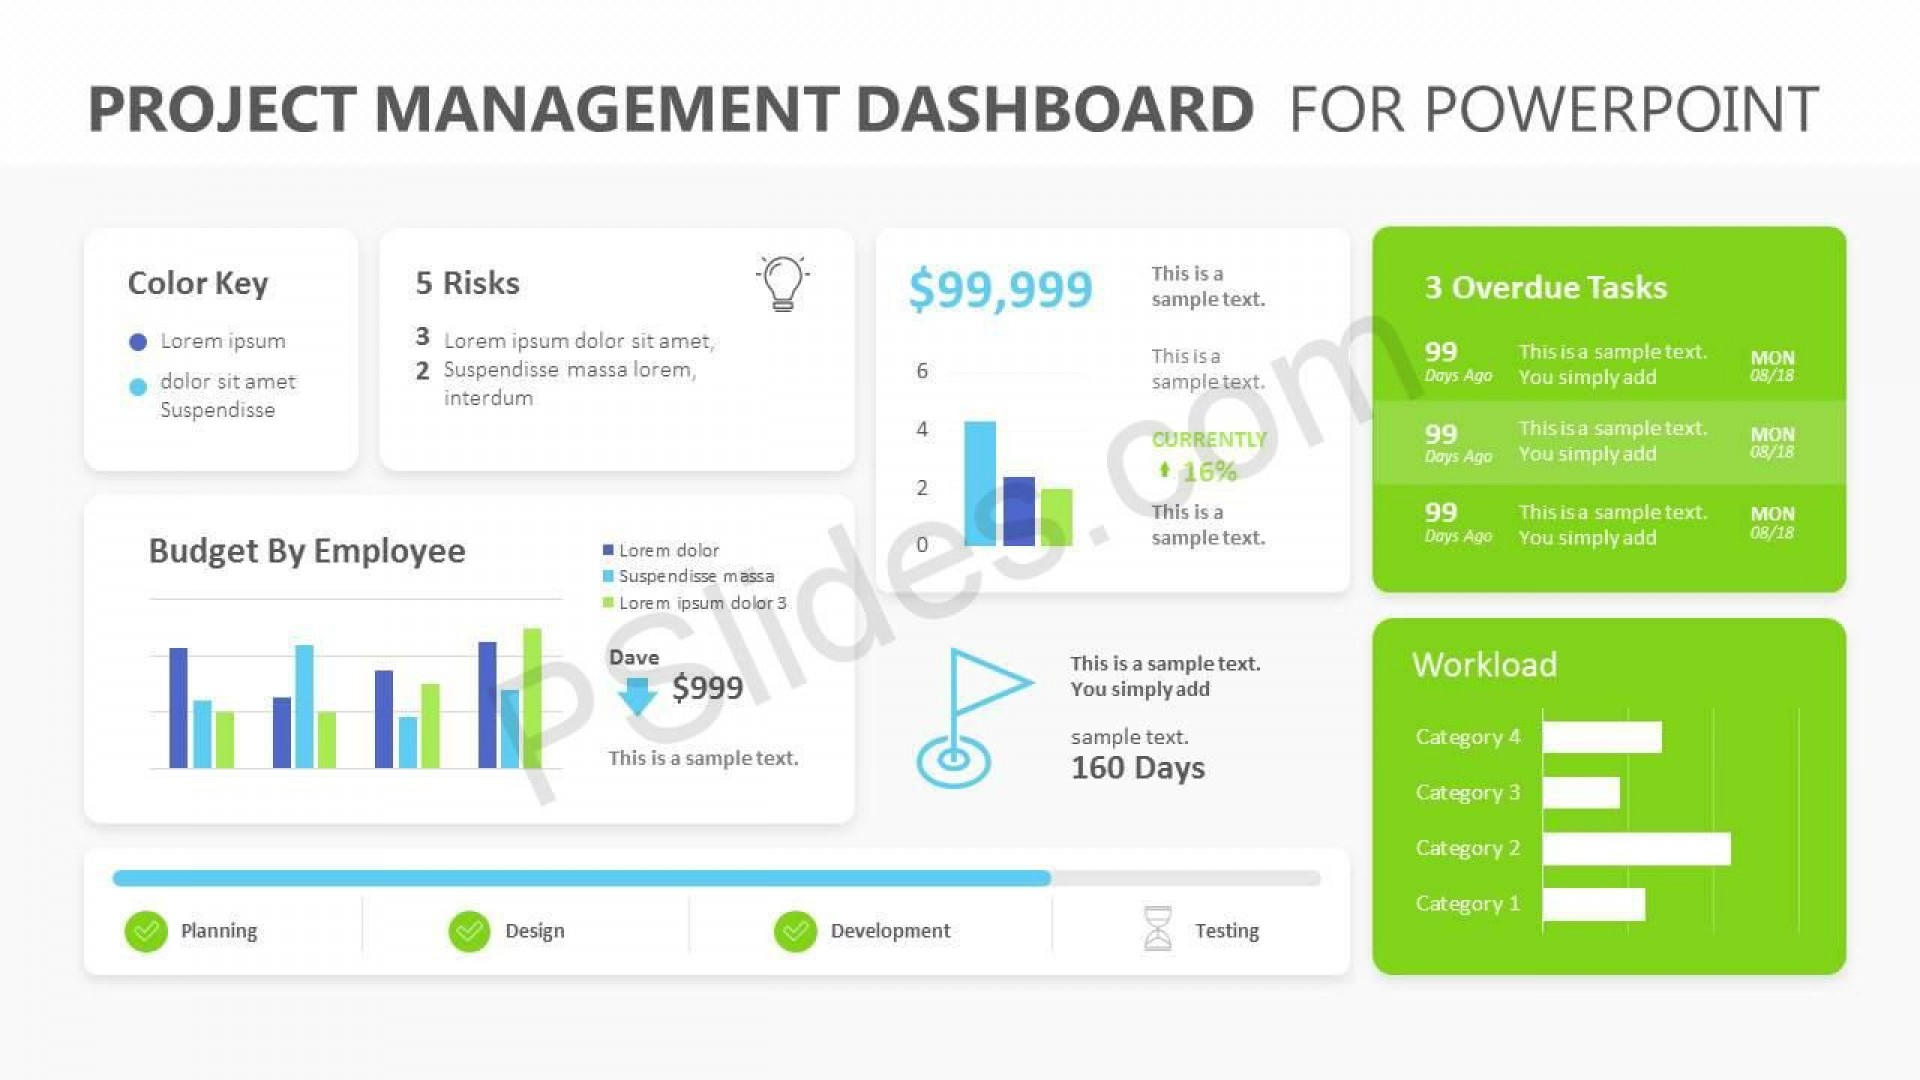 008 Best Project Management Powerpoint Template Free Download Idea  Sqert Dashboard1920